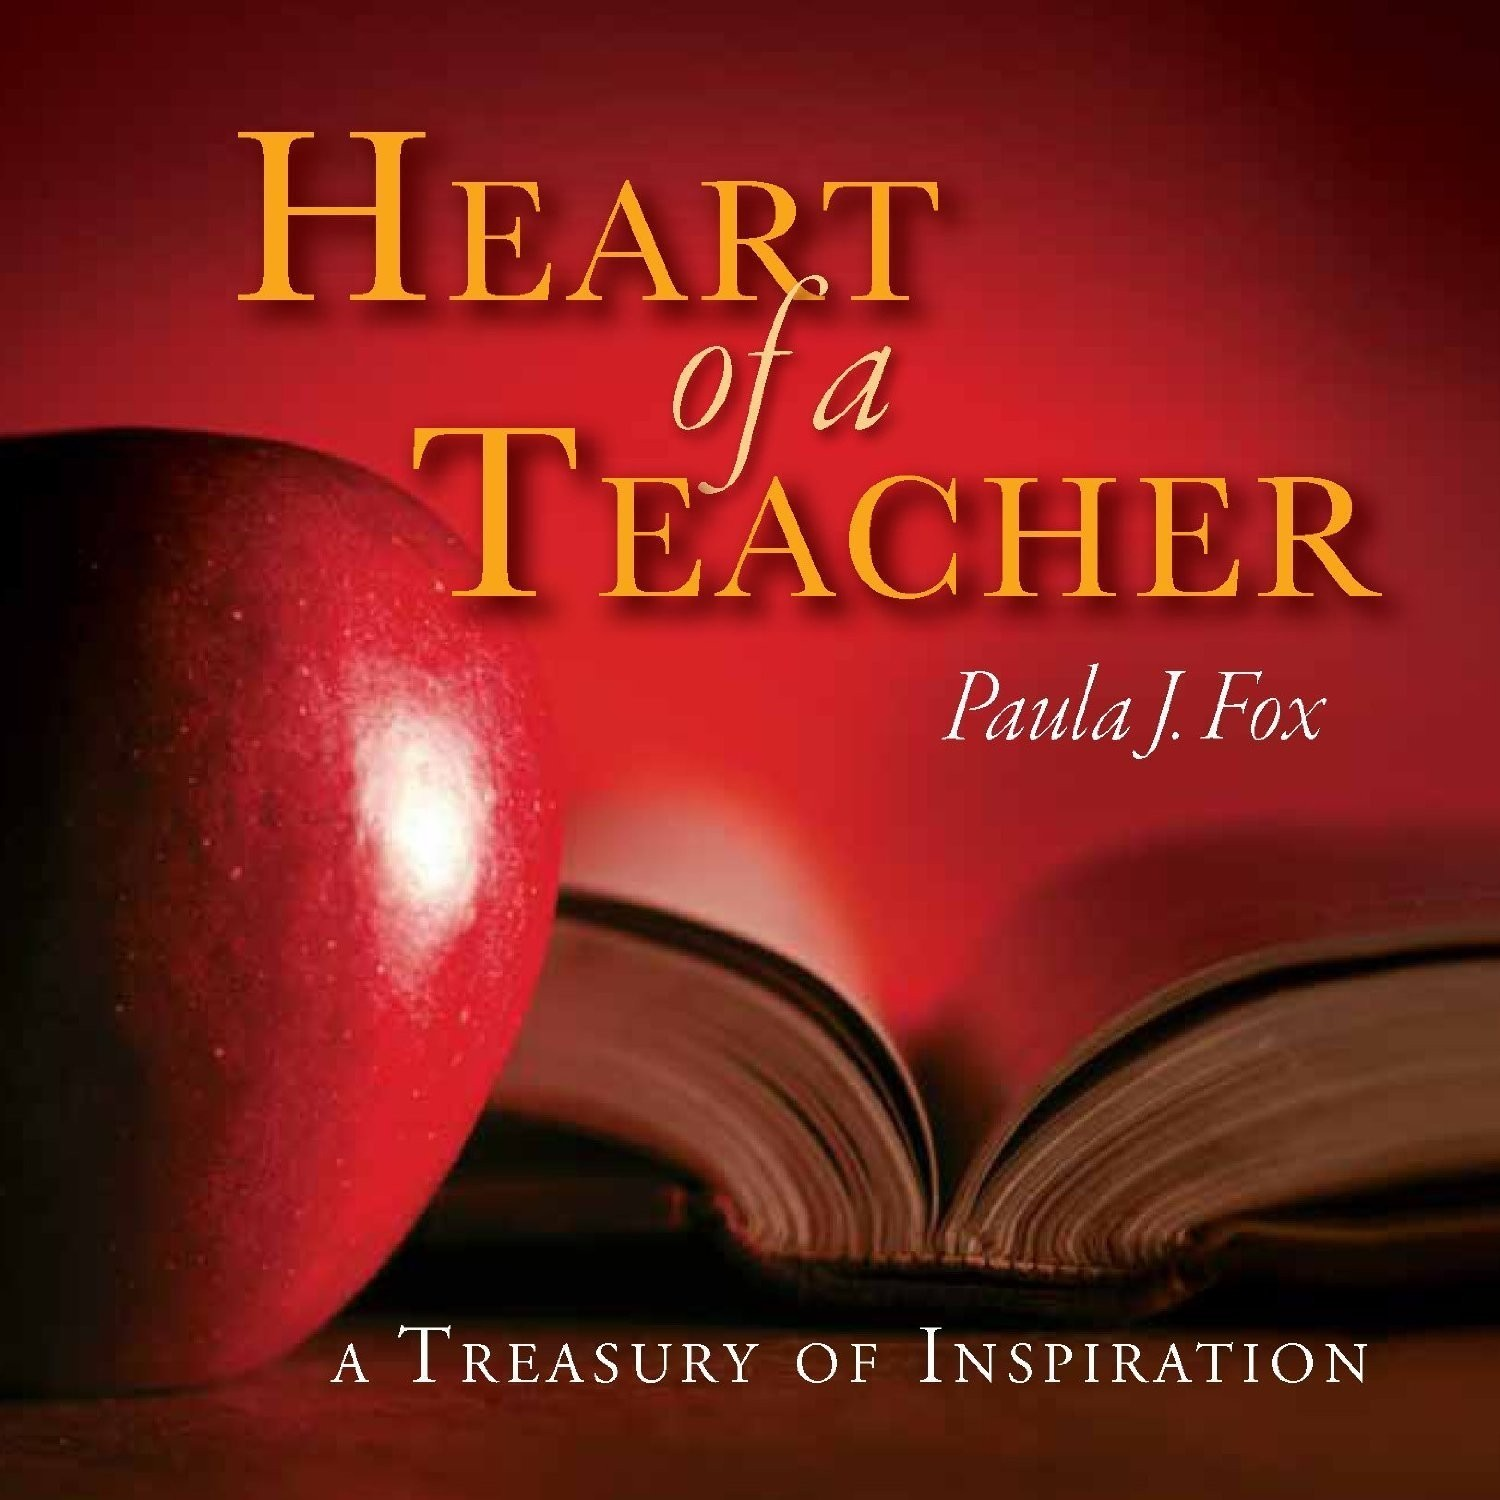 Printable The Heart a Teacher: A Treasury of Inspiration Audiobook Cover Art